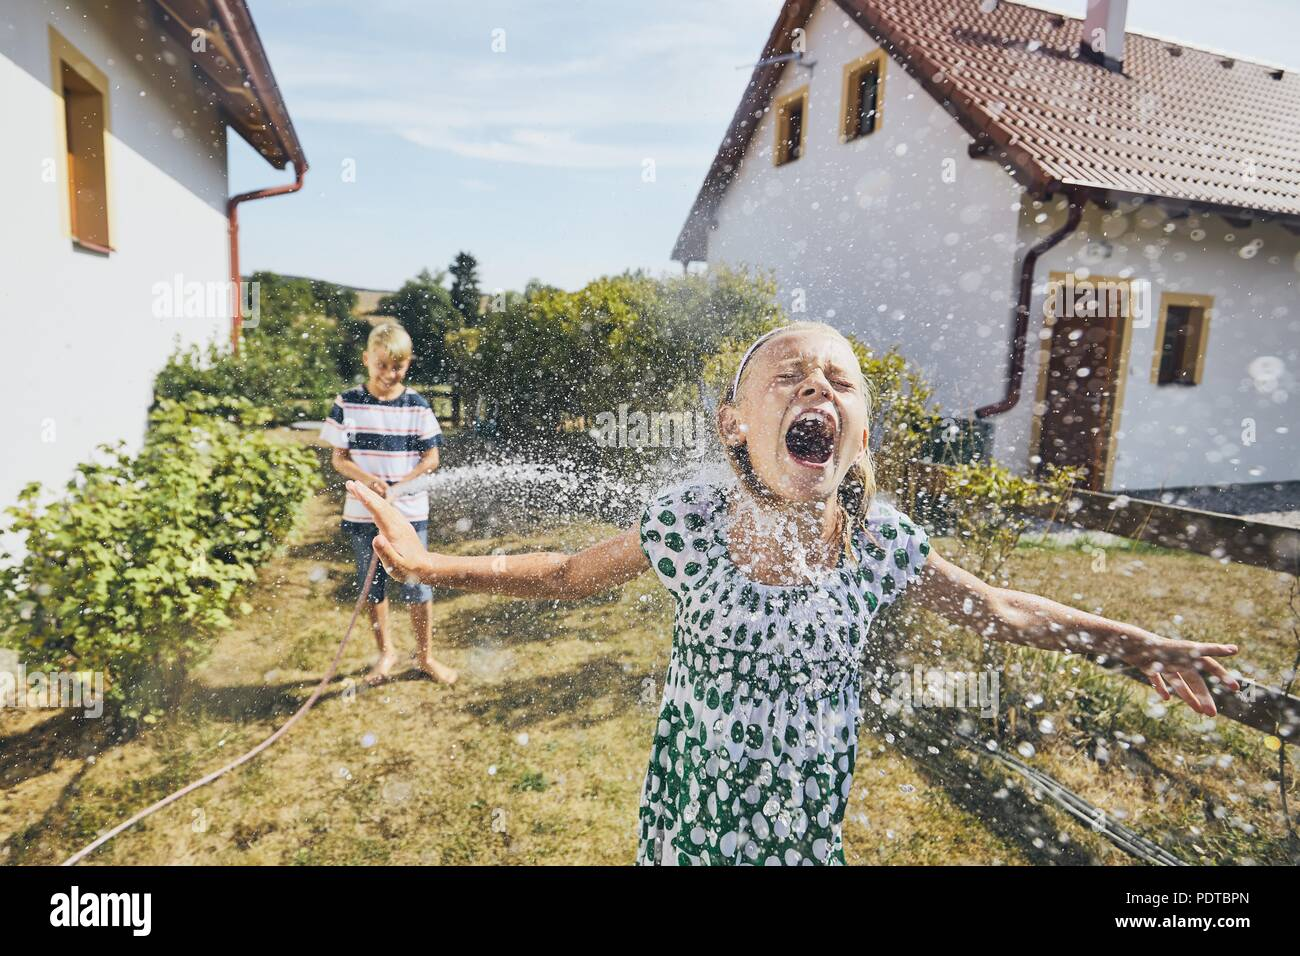 Children having fun with splashing water. Siblings on the back yard of the house during summer day. - Stock Image